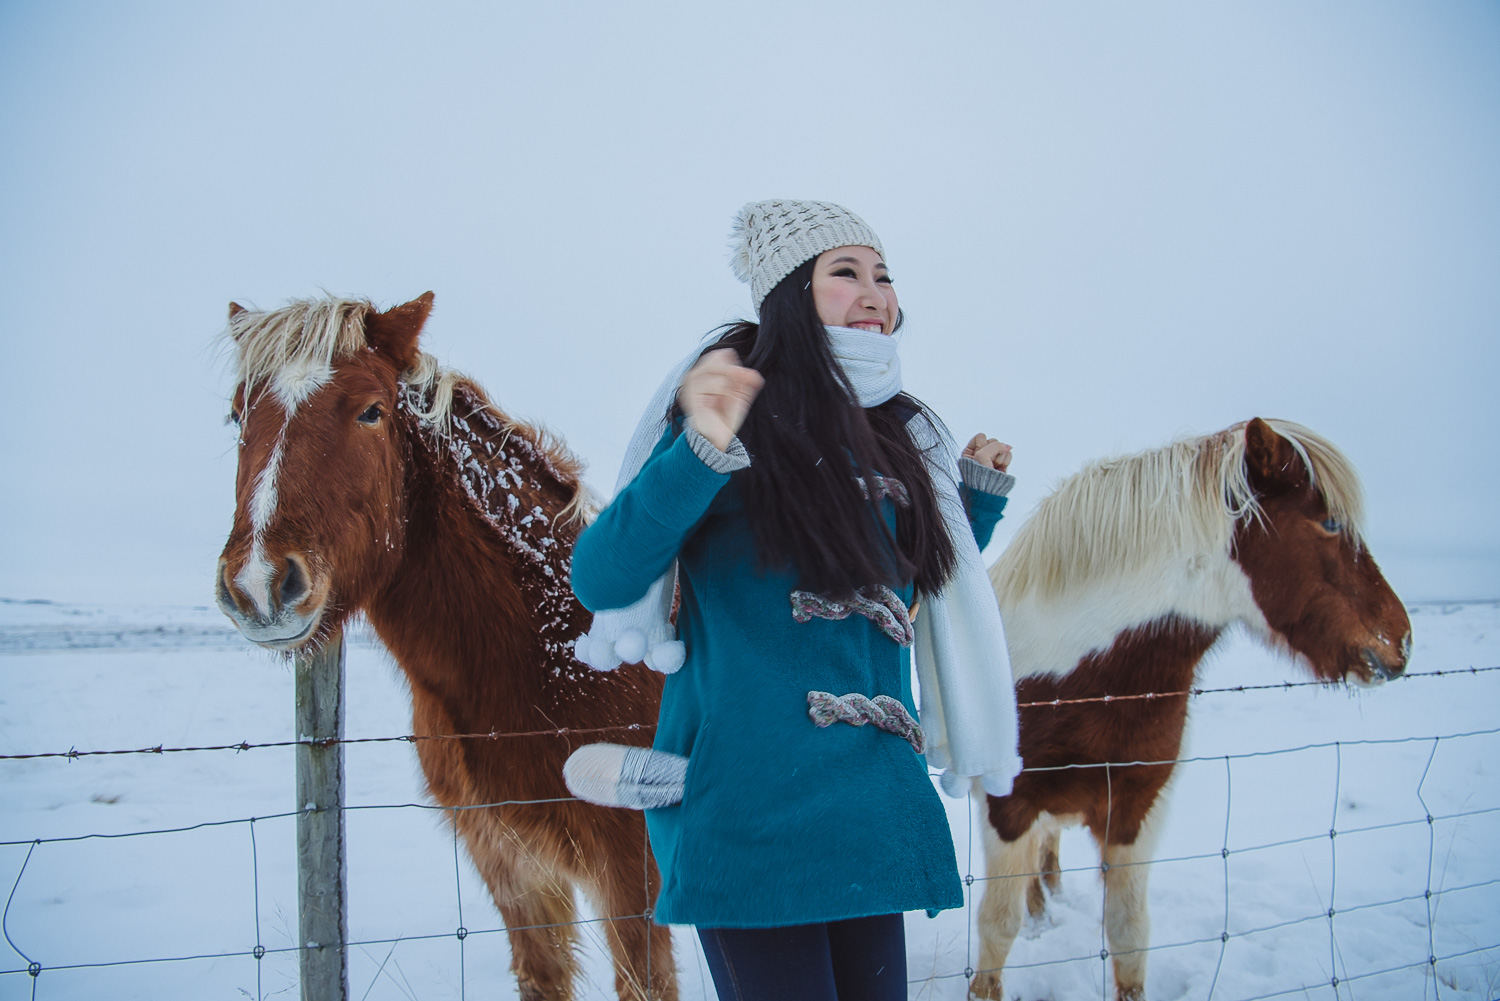 iceland ring road horses 19